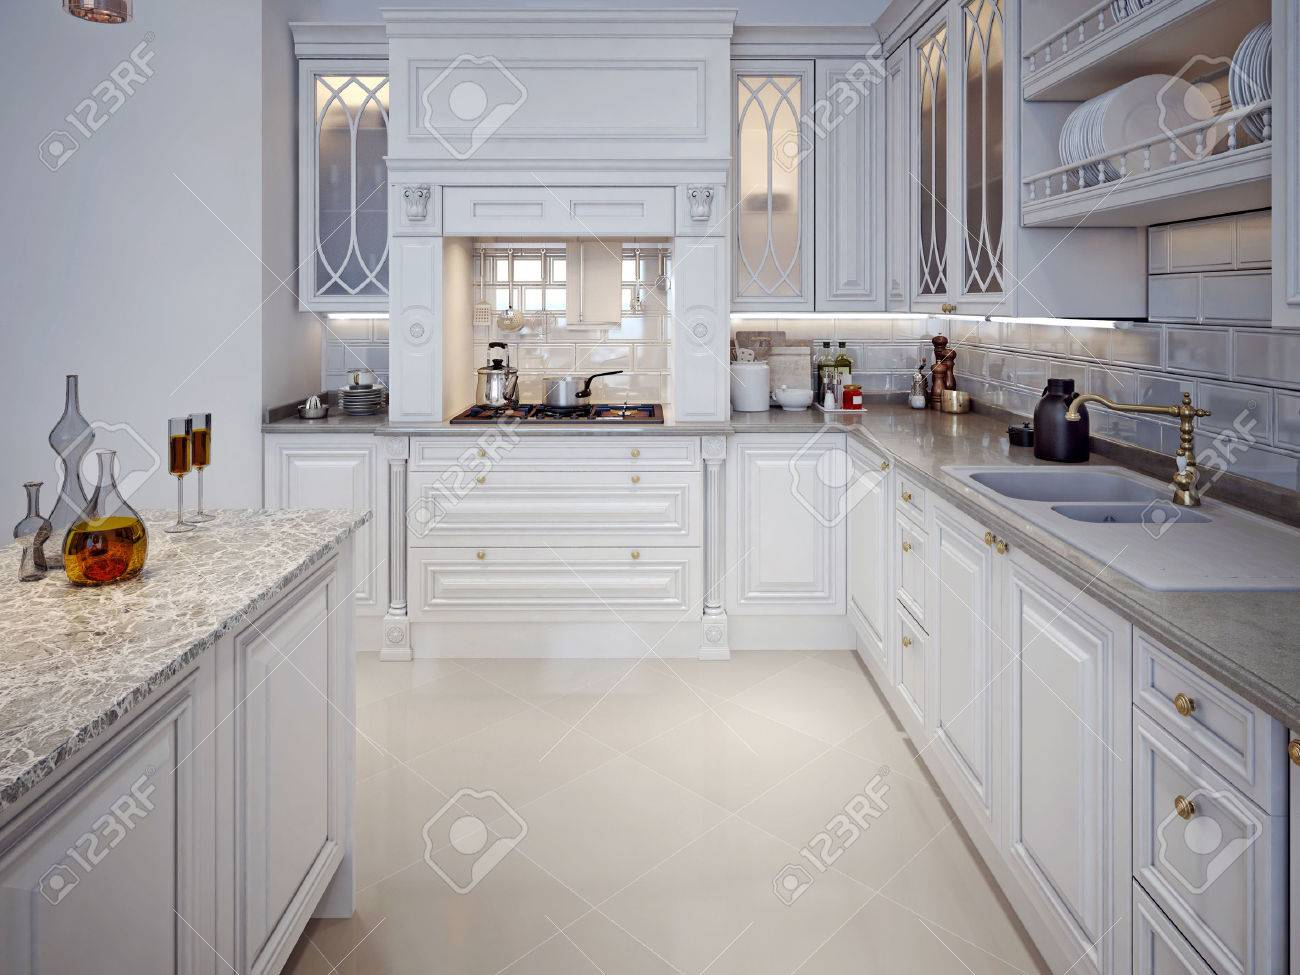 Luxury White Kitchen With A Classic Style. 3D Render. Stock Photo   47512594